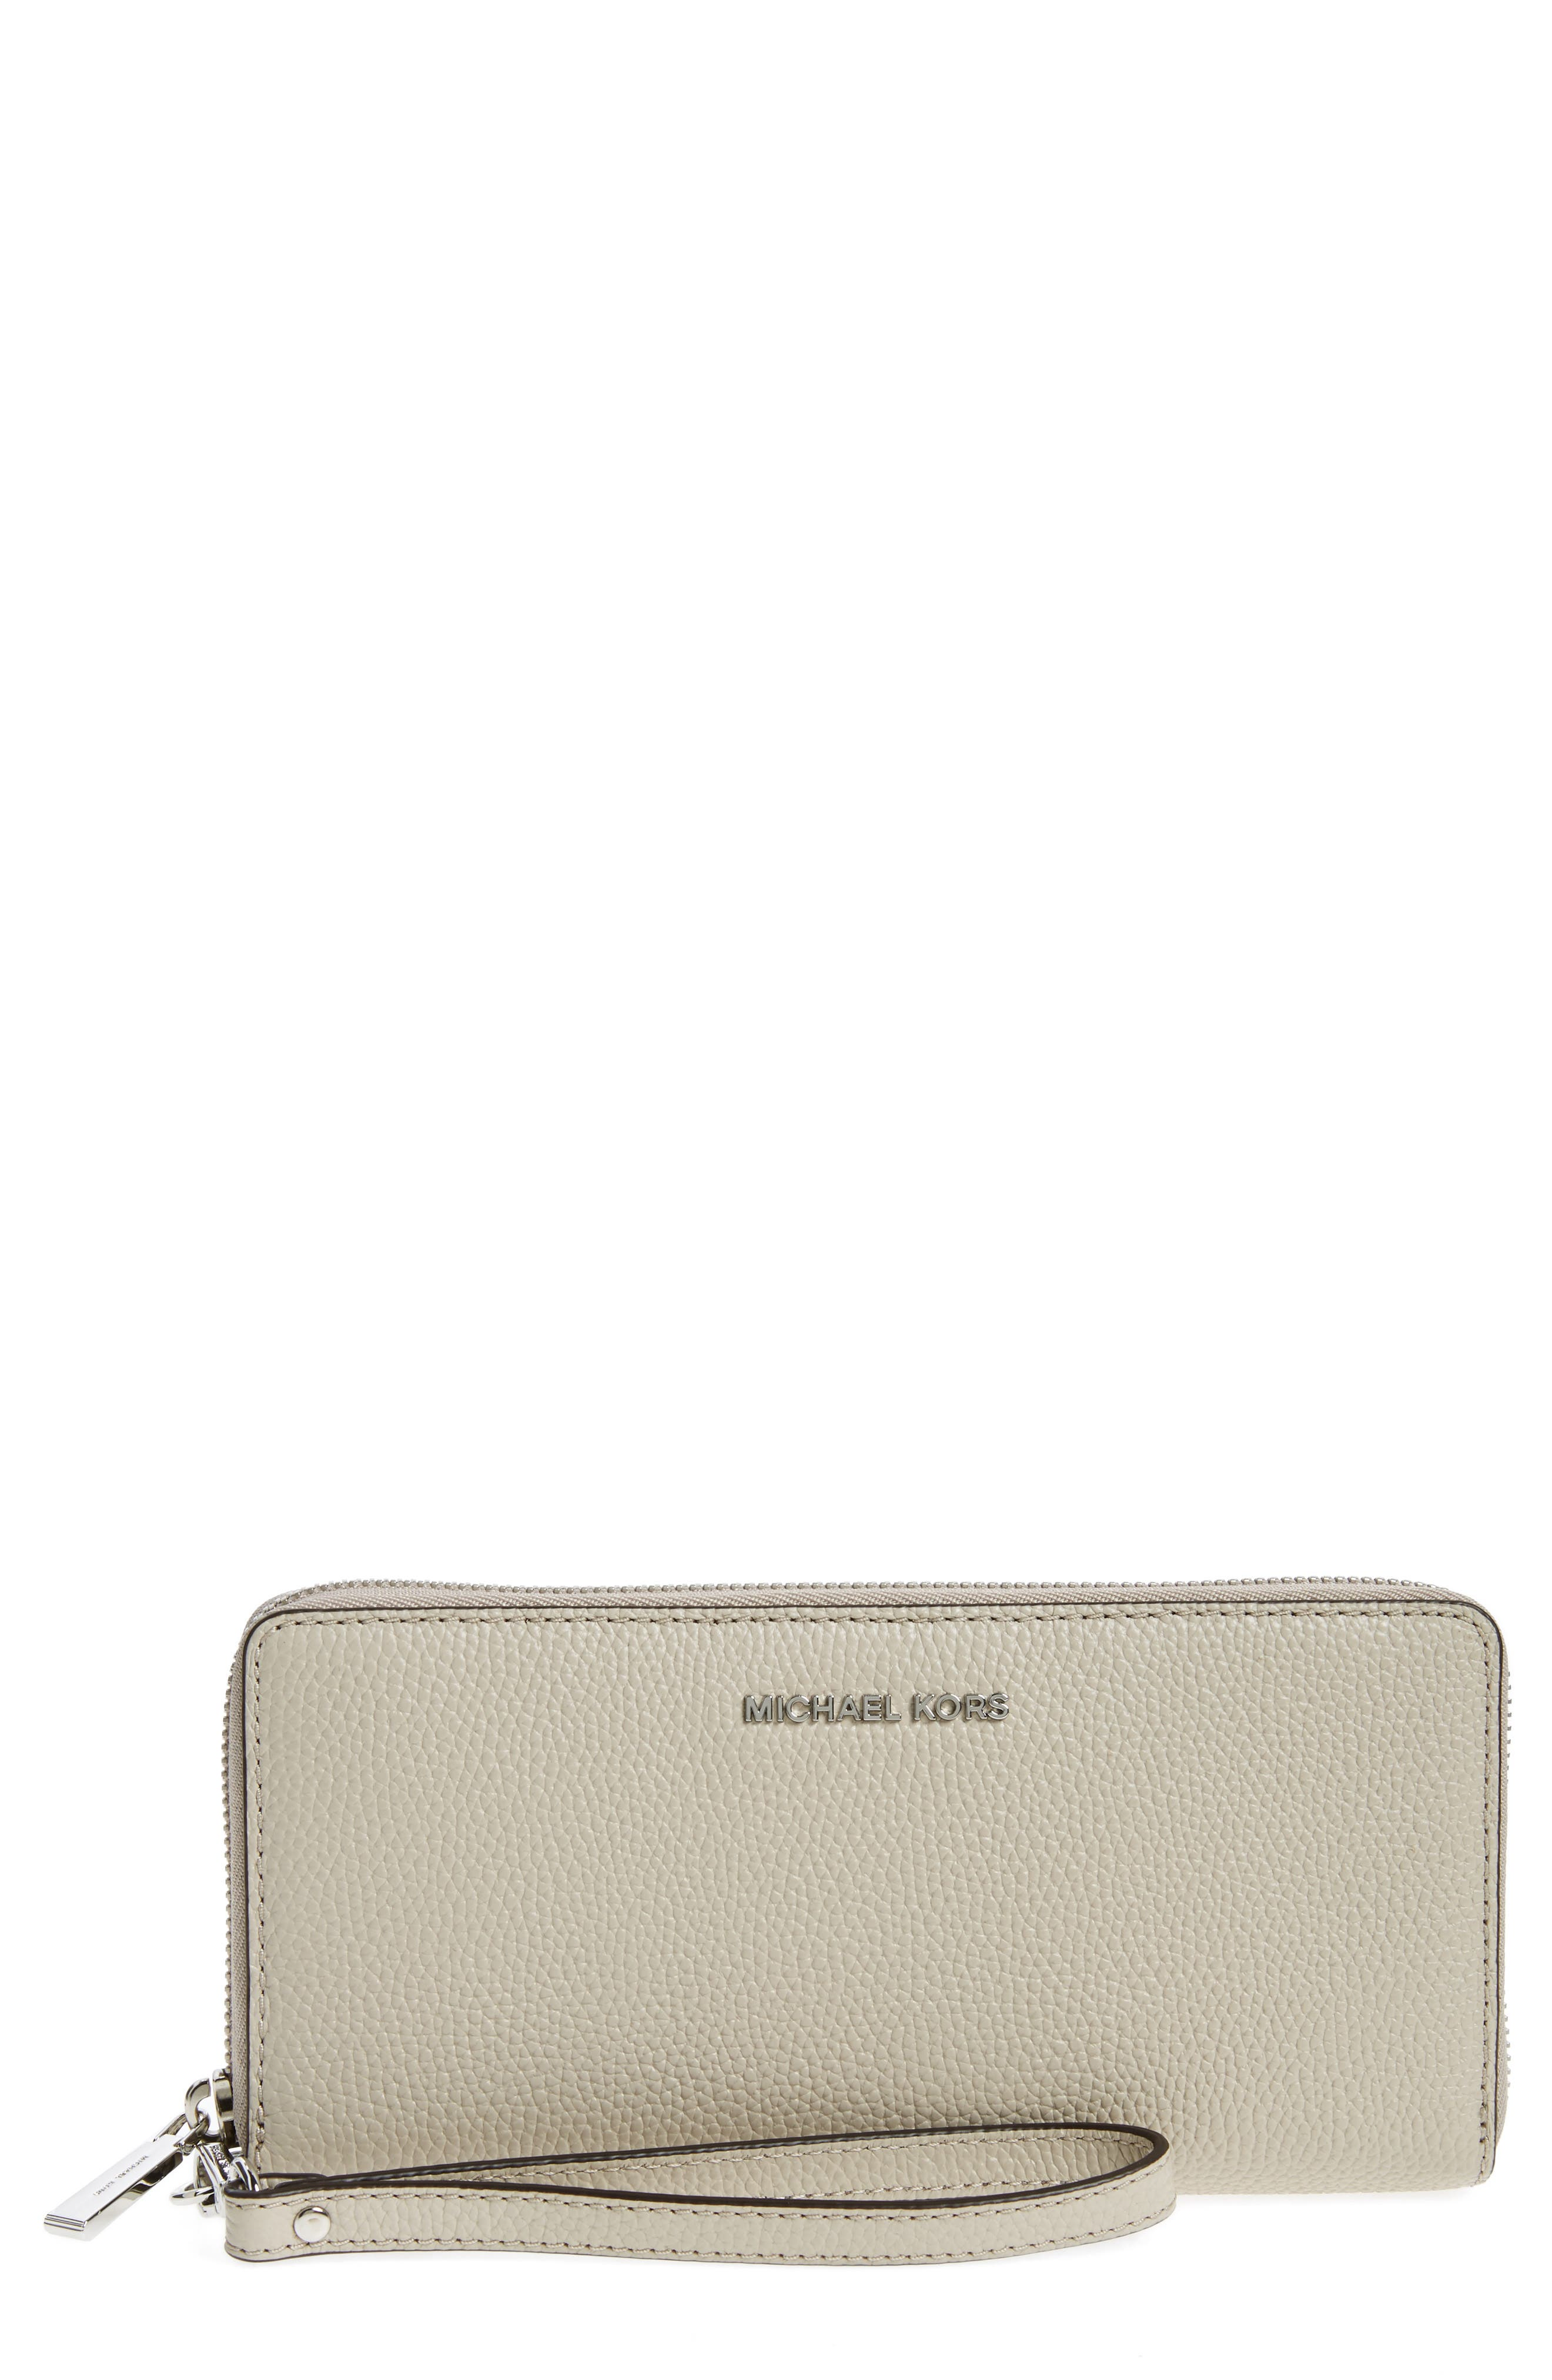 'Mercer' Leather Continental Wallet,                             Main thumbnail 5, color,